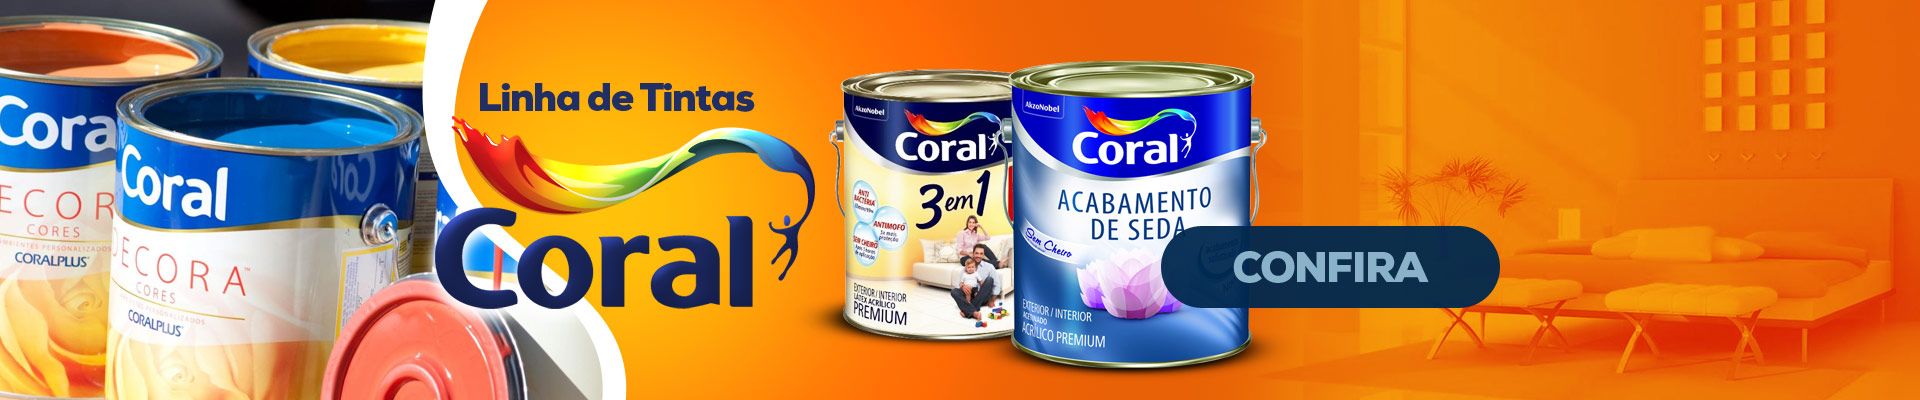 banner coral